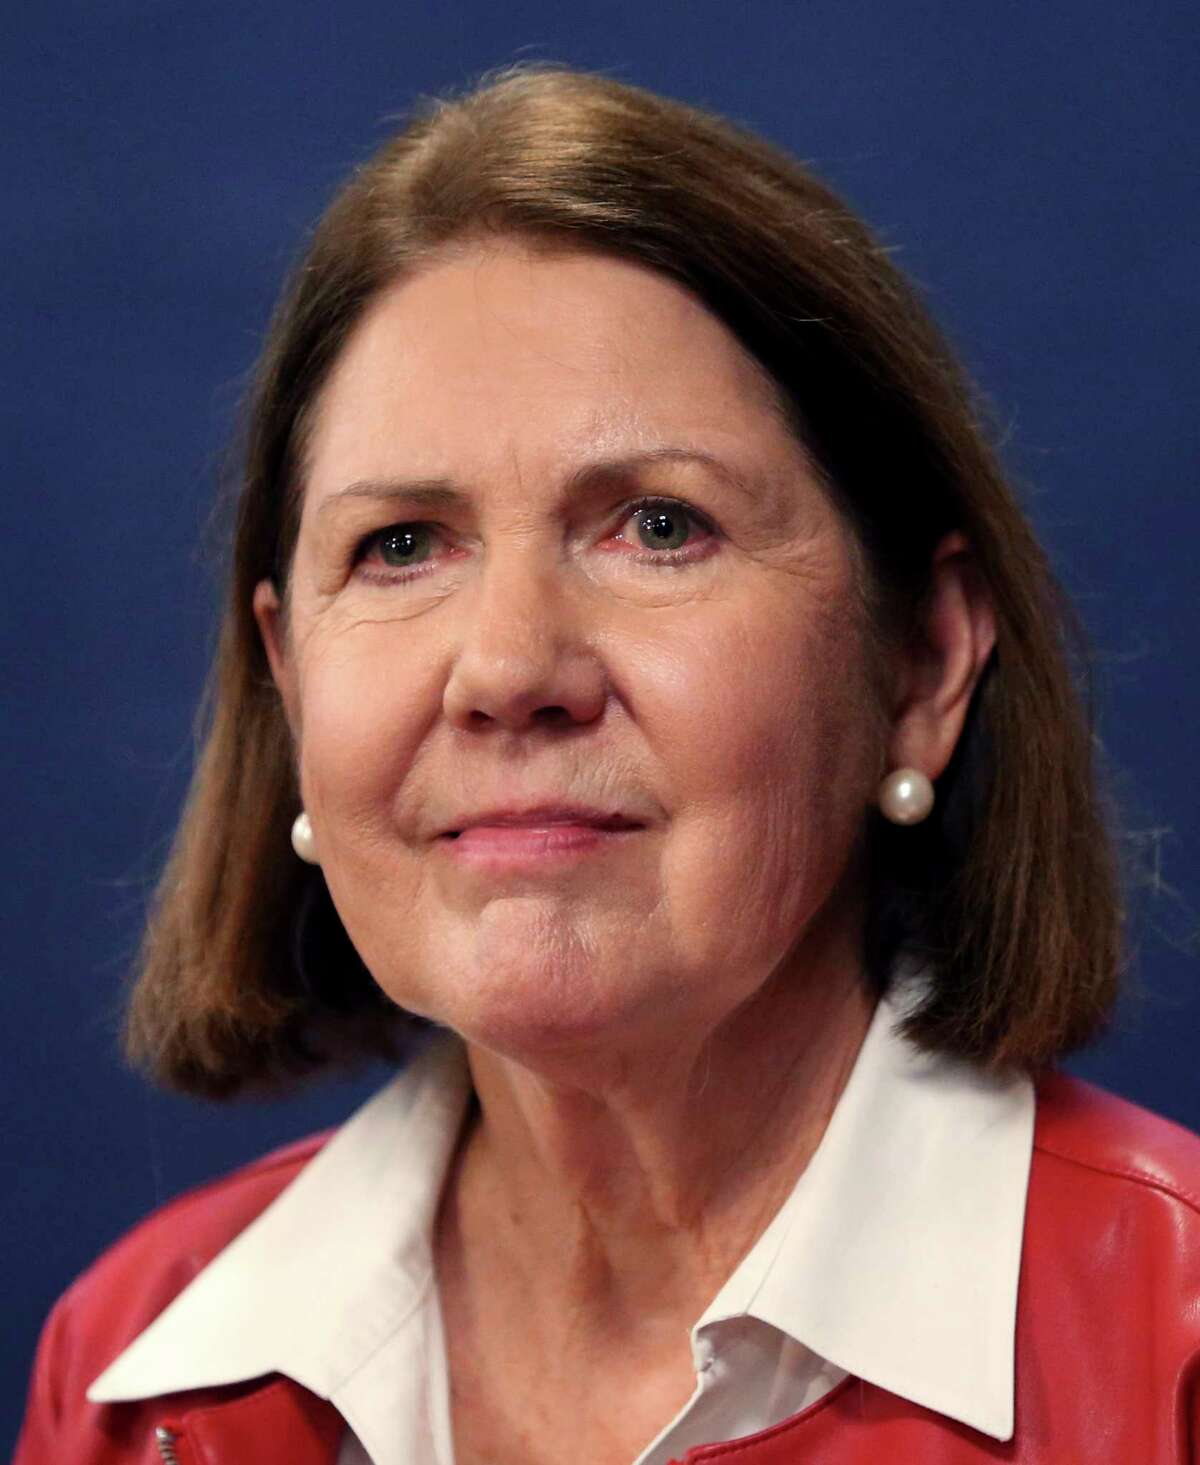 ARIZONA, HOUSEDemocrat Ann Kirkpatrick wins southern Arizona's 2nd Congressional District seat held by Republicans for years